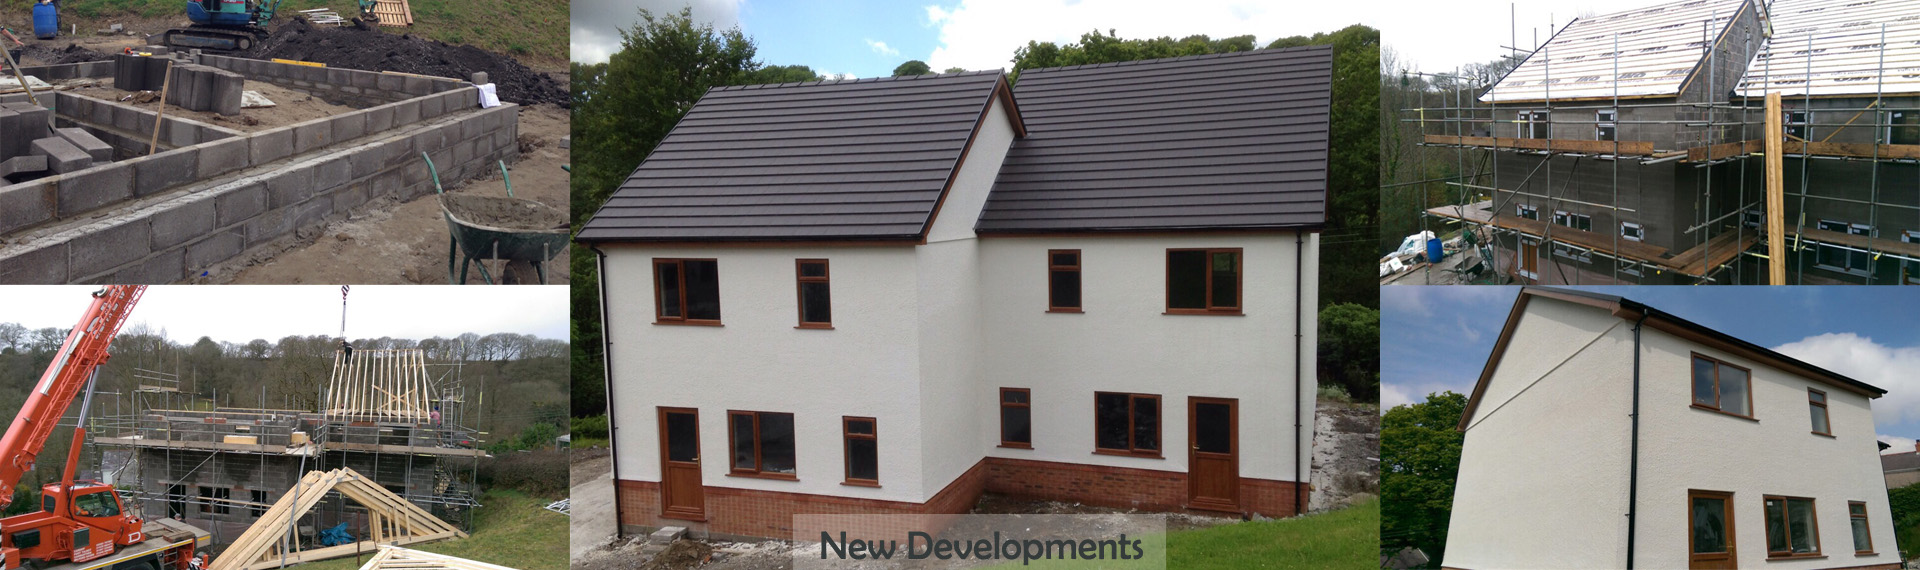 New Developments by S&A Building Contractors in Neath, Port Talbot, Swansea, Porthcawl, Bridgend.